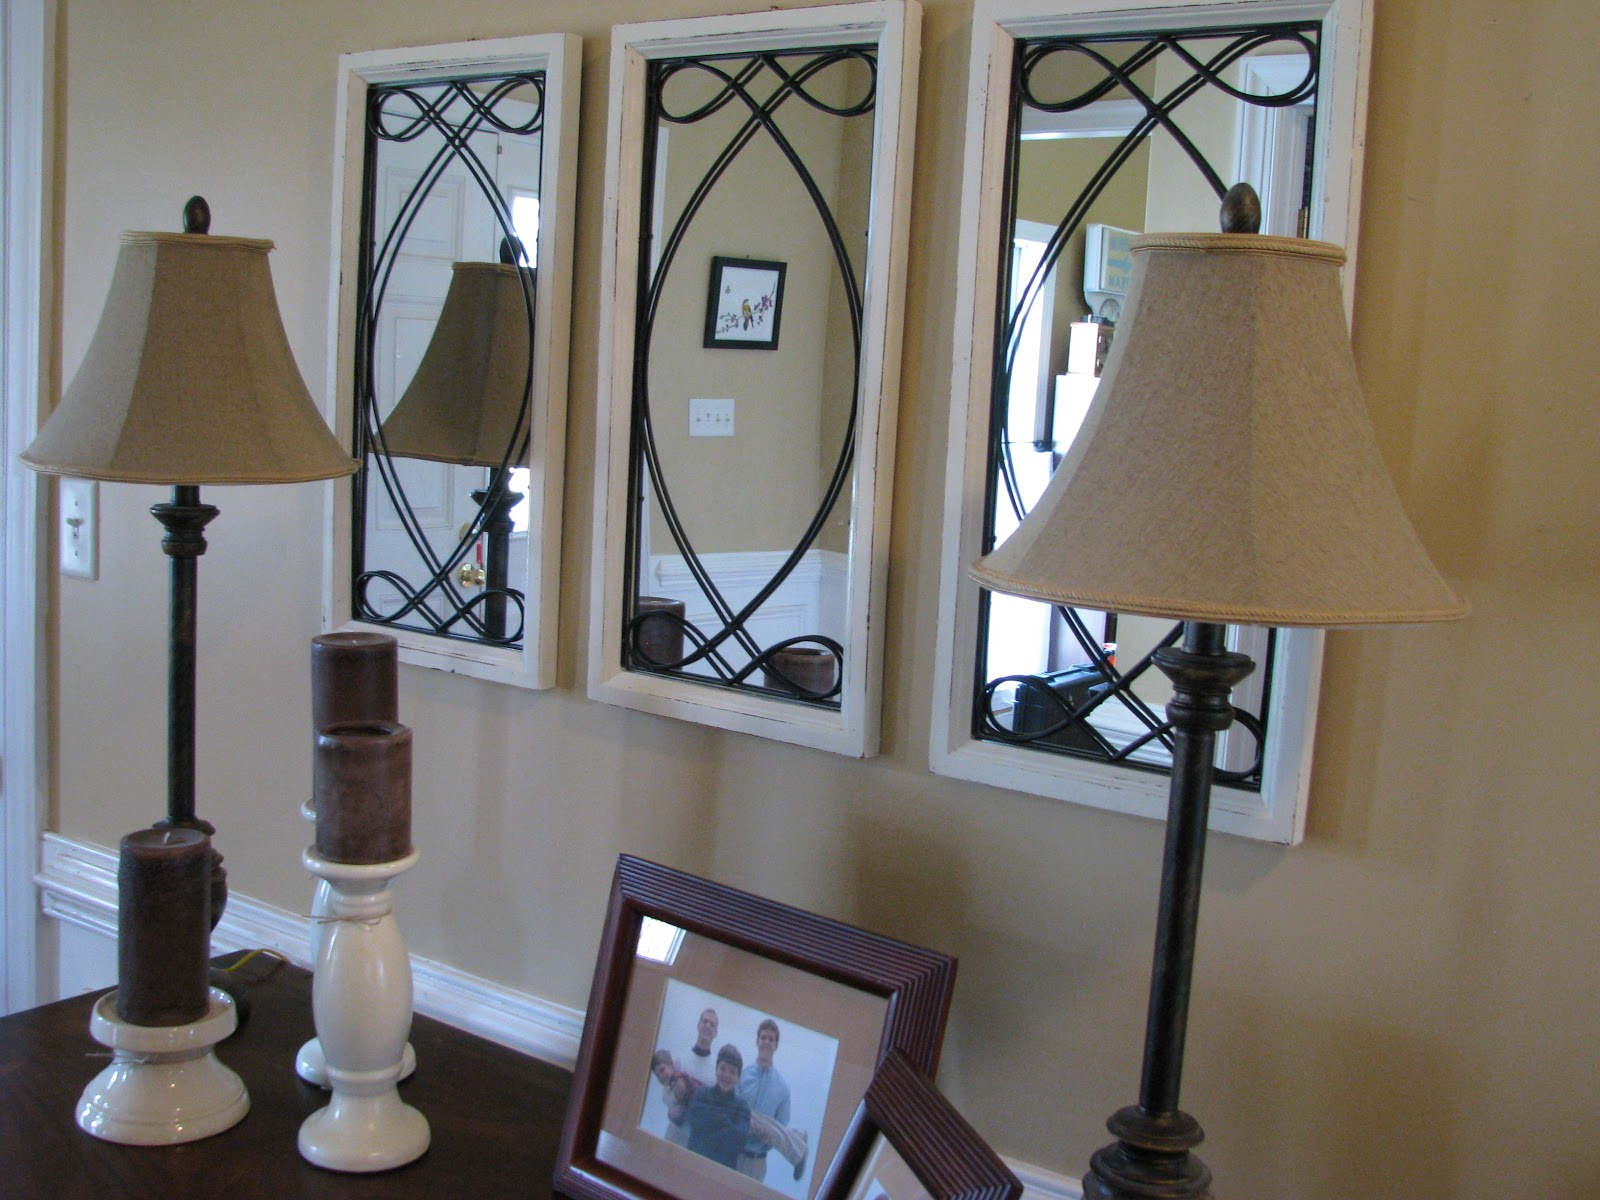 100 ballard designs online catalog ballard designs tampa ballard designs online catalog just pleased as punch knock off ballard garden district mirrors